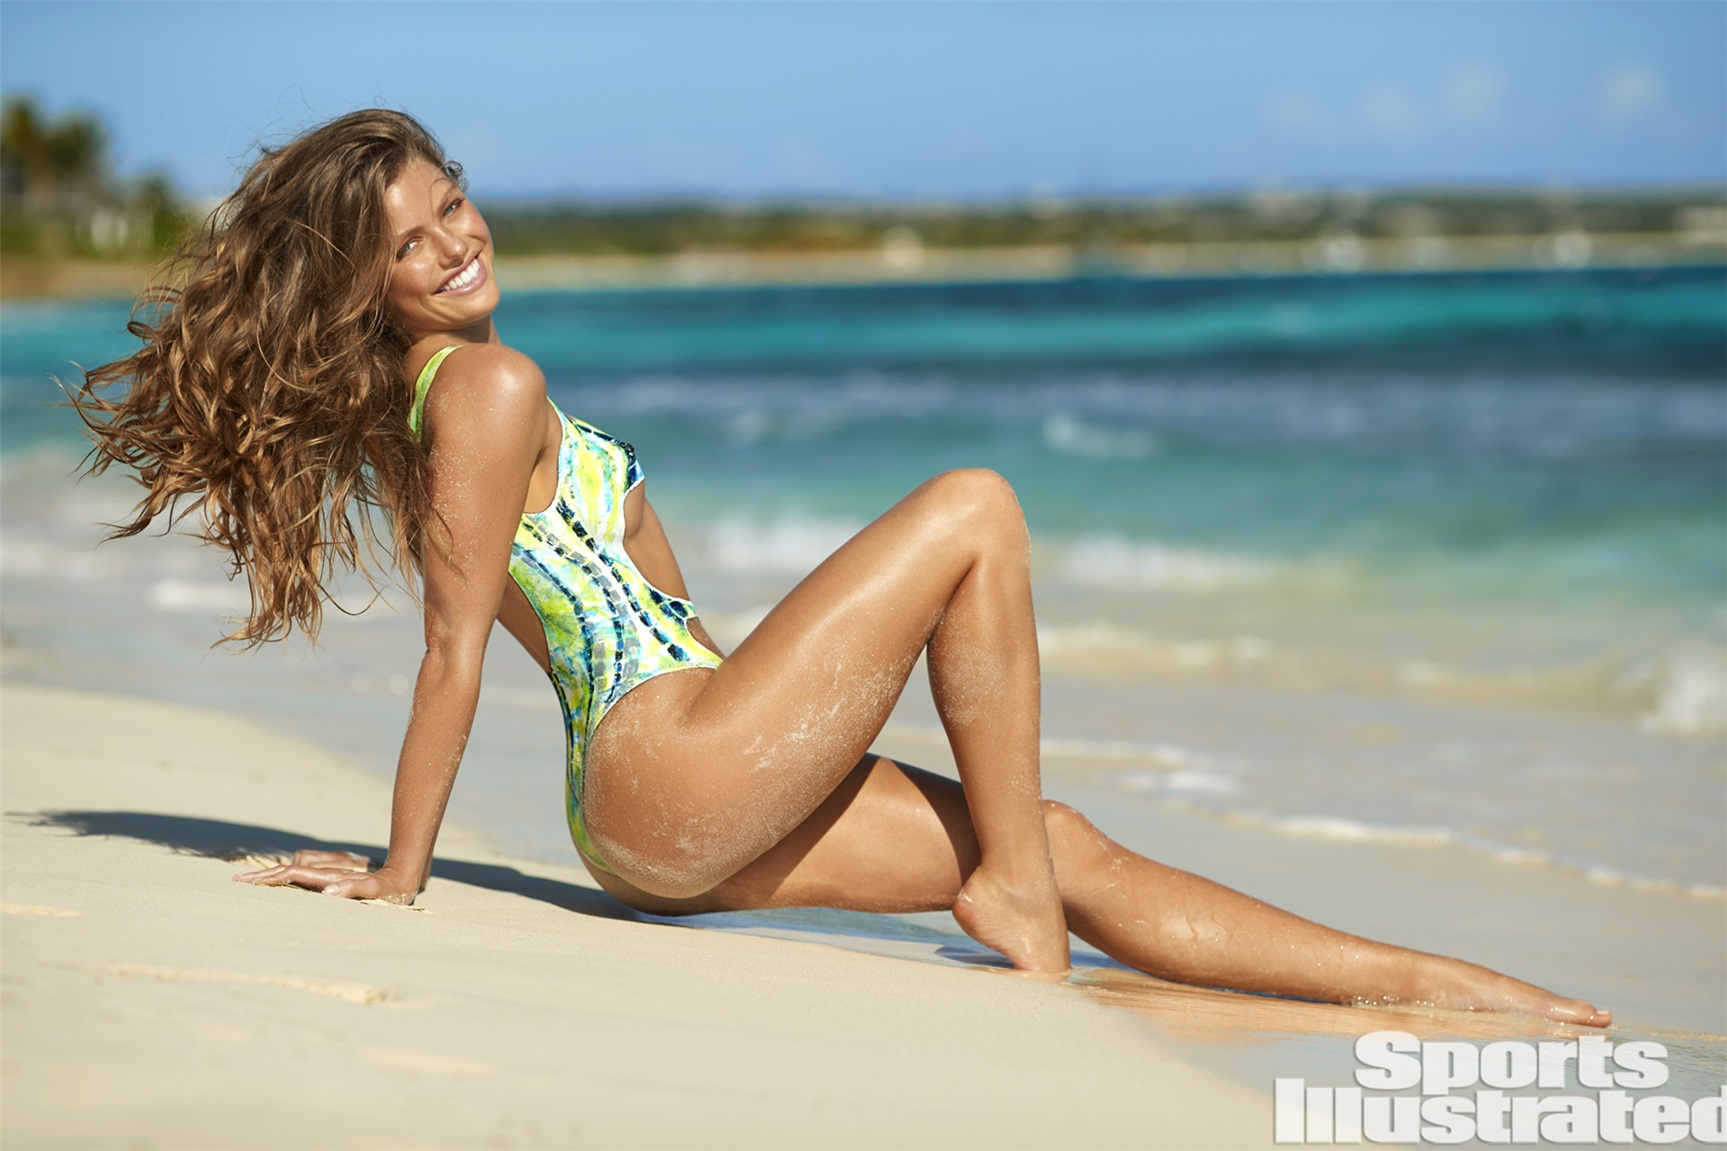 McKenna Berkley / МакКенна Беркли в боди-арт-купальнике - Sports Illustrated Swimsuit 2017 issue / in Anguilla by Josephine Clough